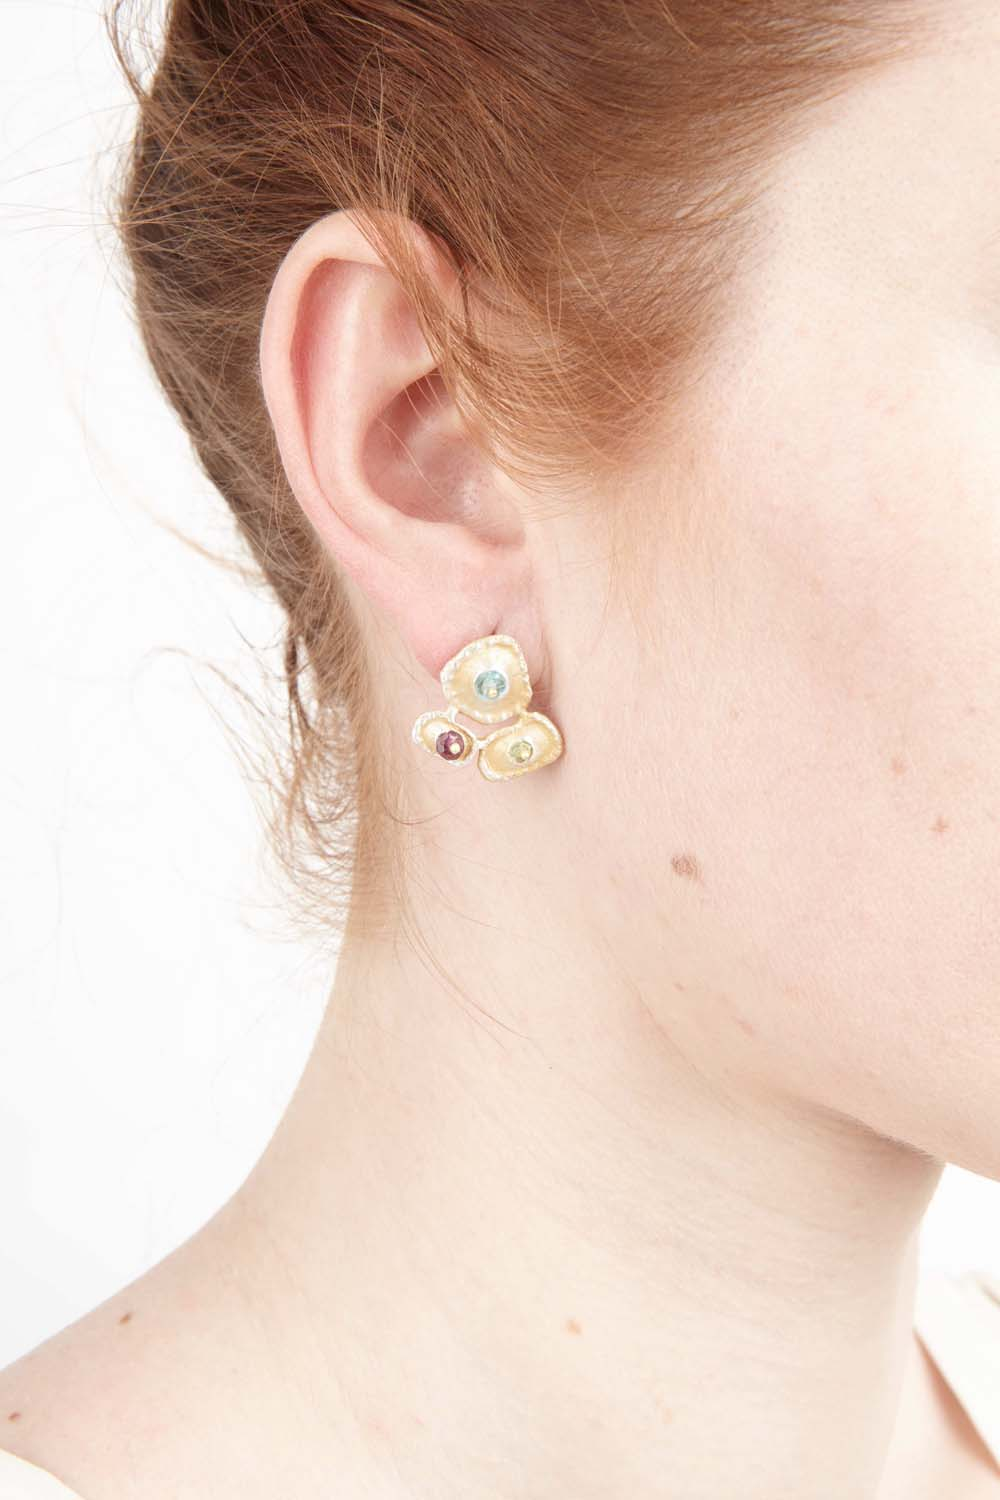 Sea Urchin Earrings - Post Cluster